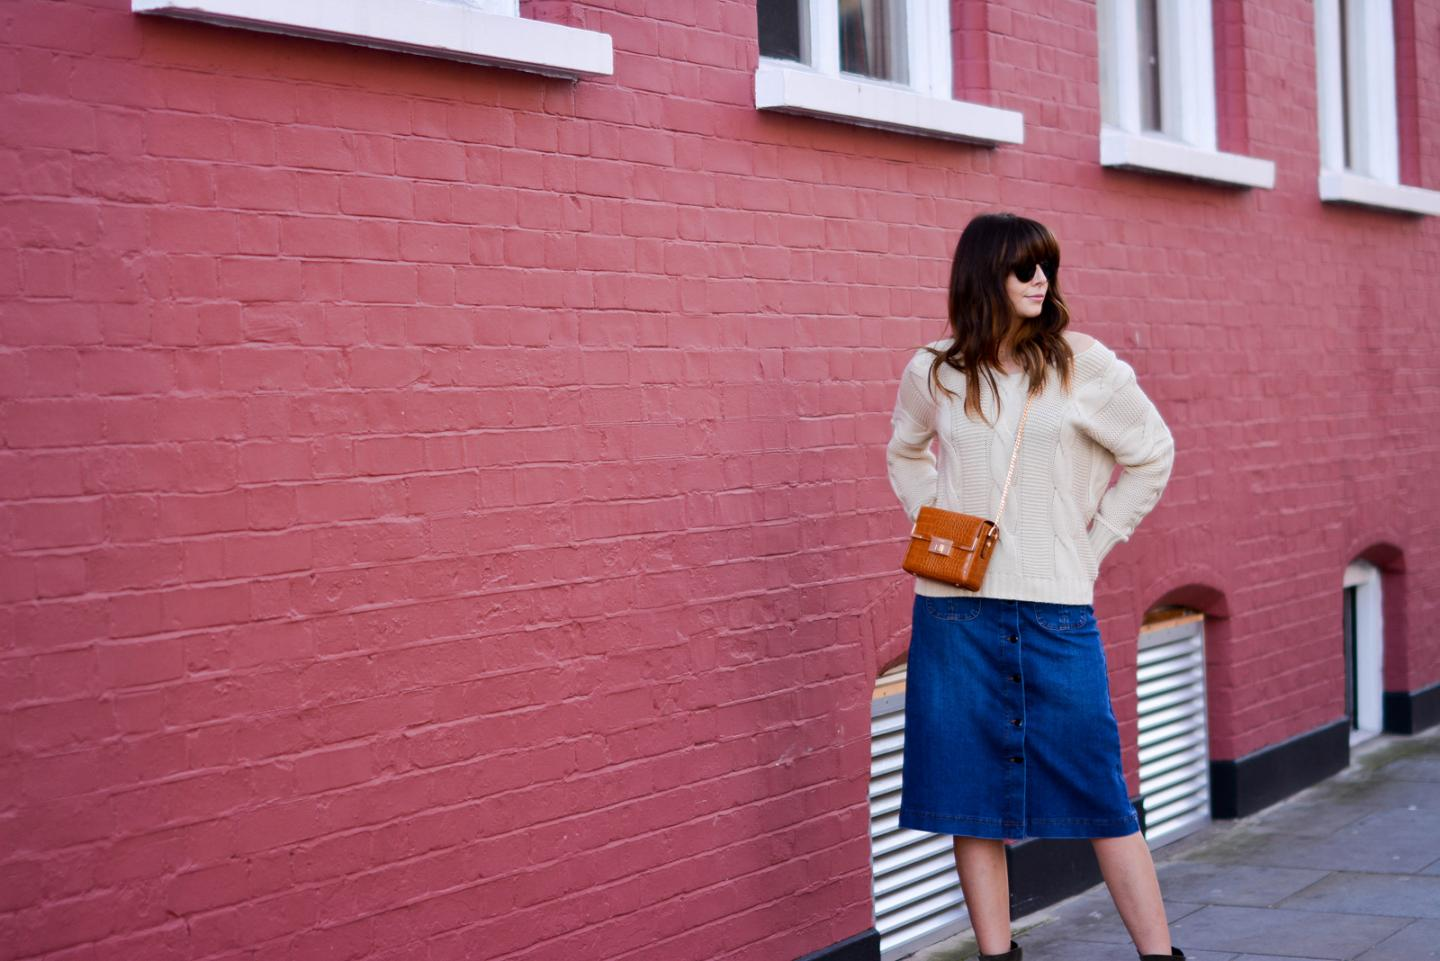 EJSTYLE - Emma Hill, 70's style, london street style, LFW AW15, M&S denim a line skirt, off shoulder cable knit jumper, Dune box bag